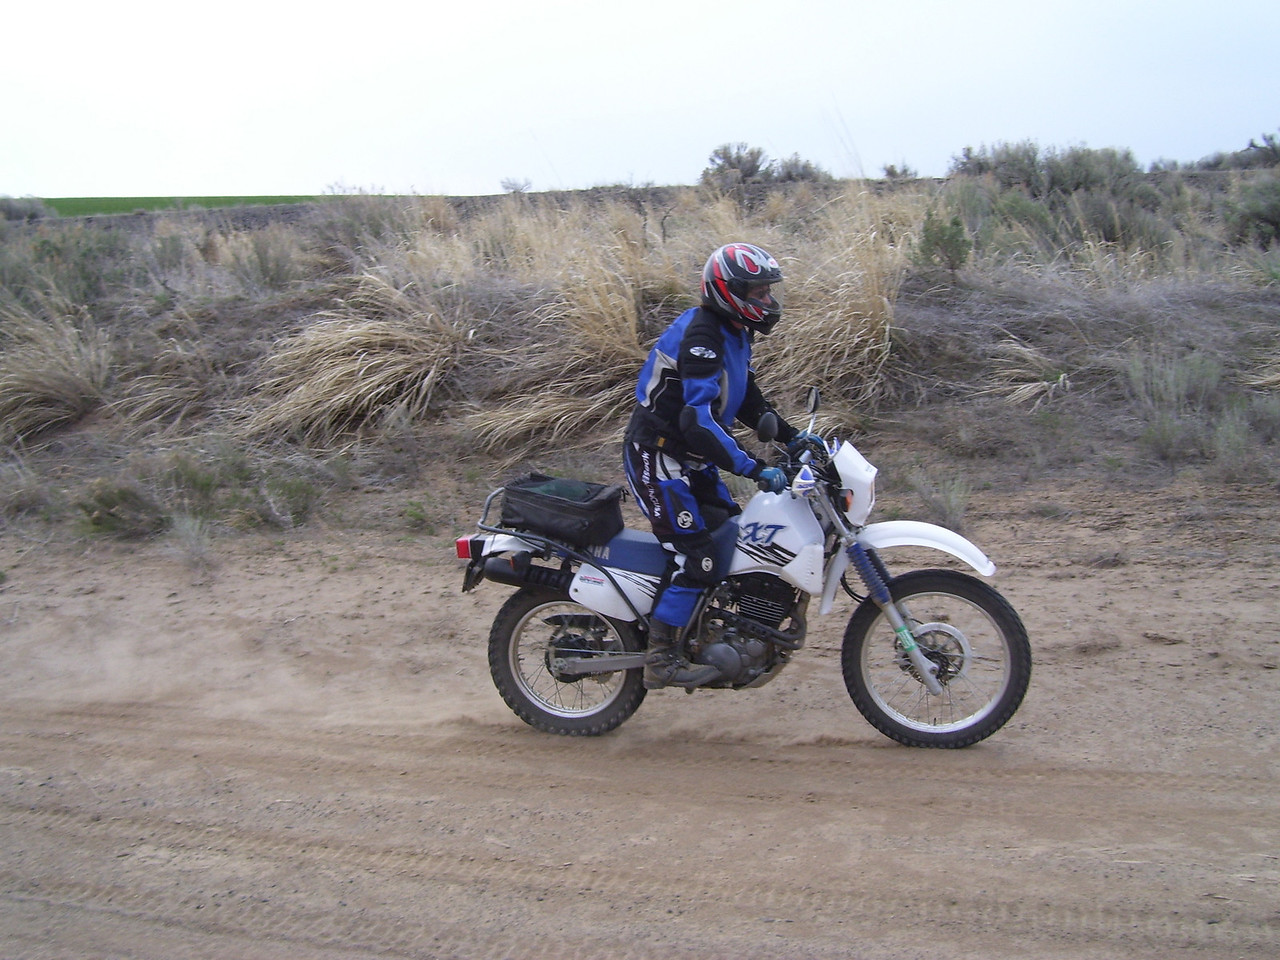 Sylvia on her XT 350. Check out her nice rack and bag to carry her chapsick in.